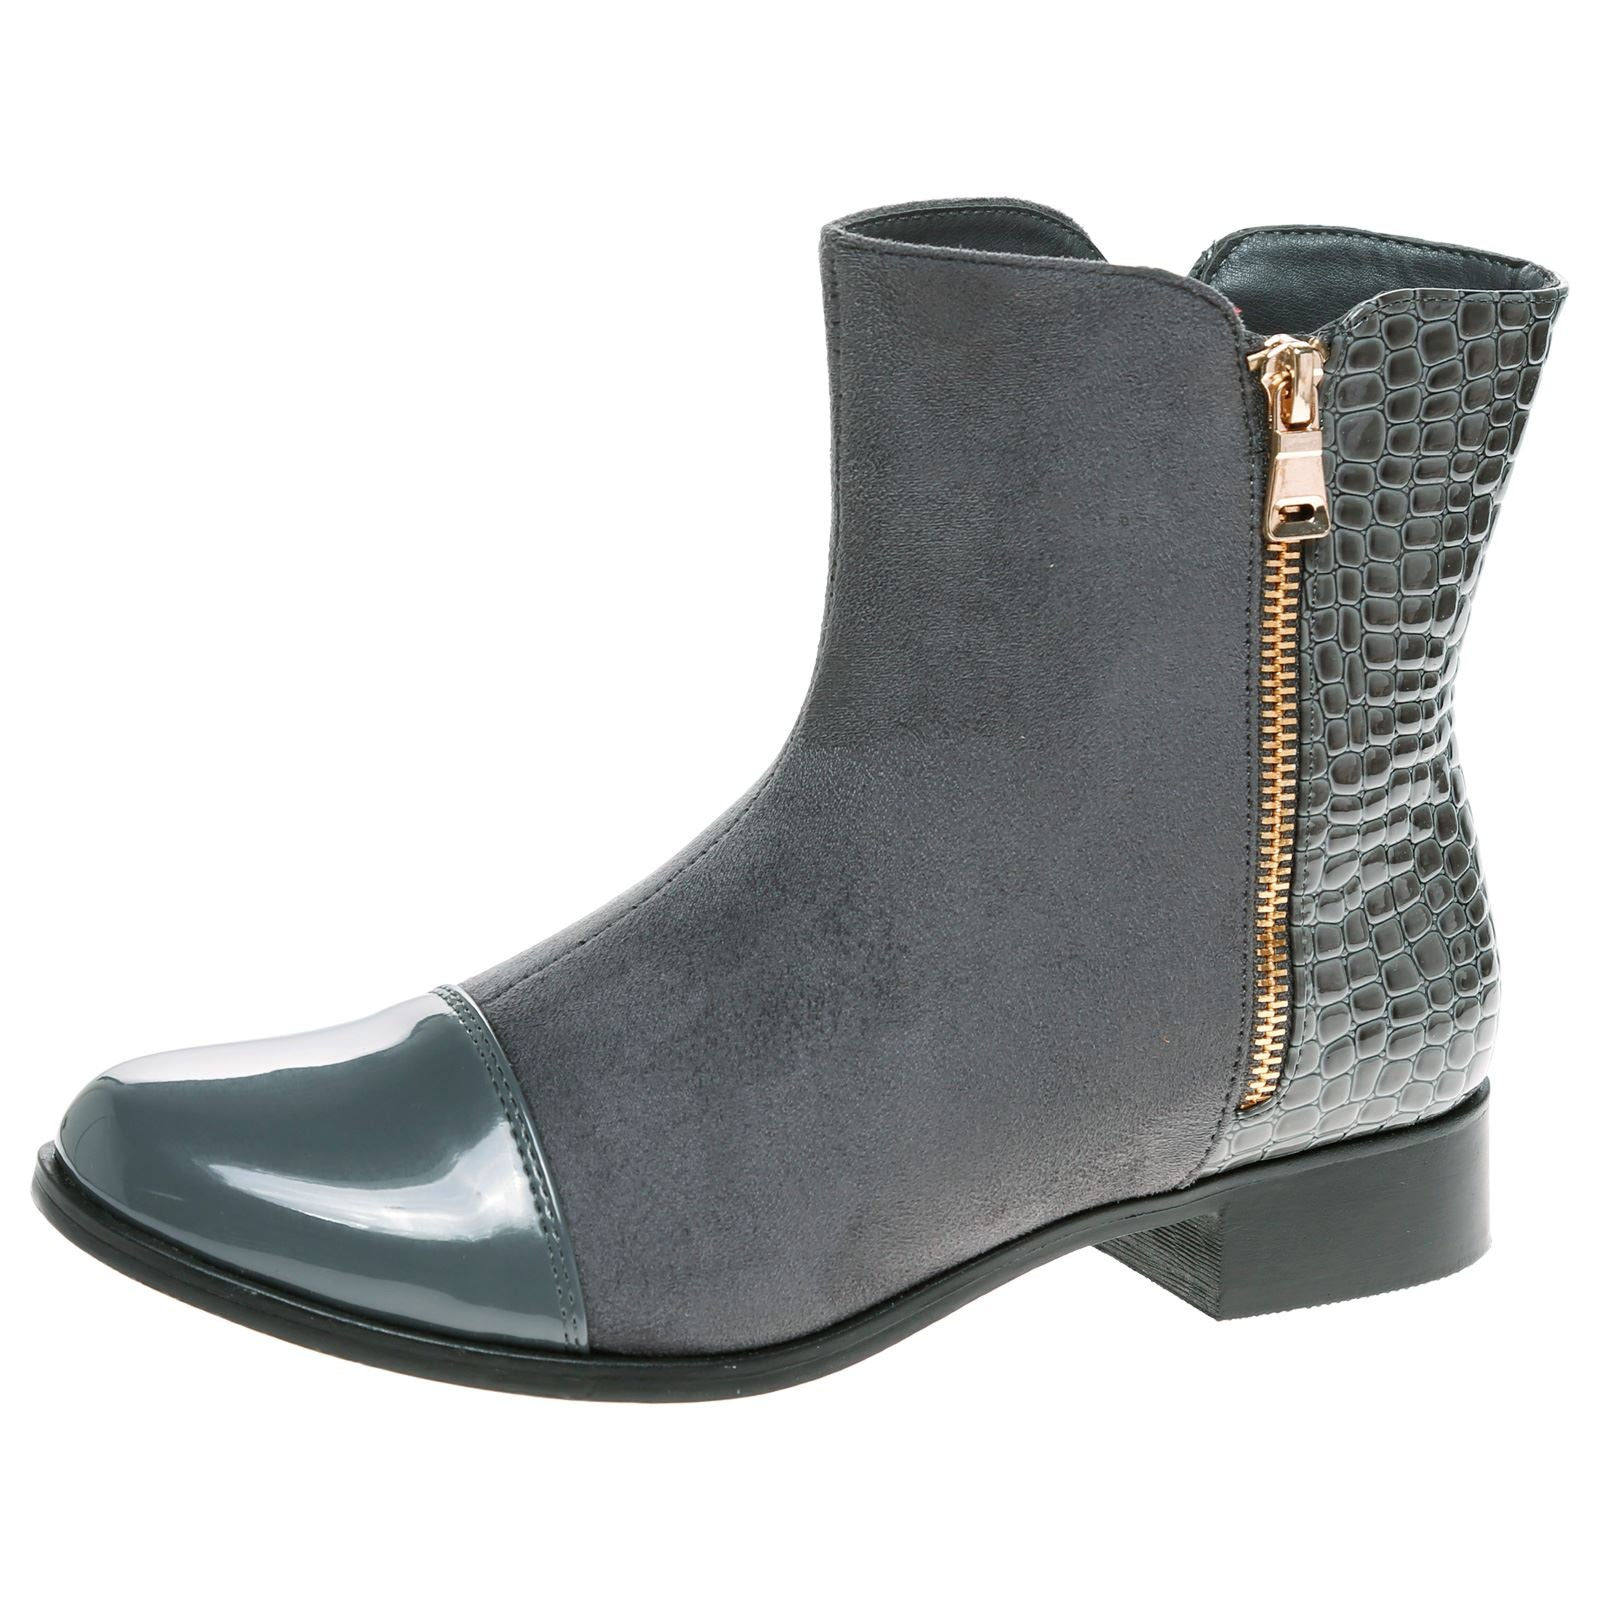 Gianna Two Tone Ankle Boots in Grey